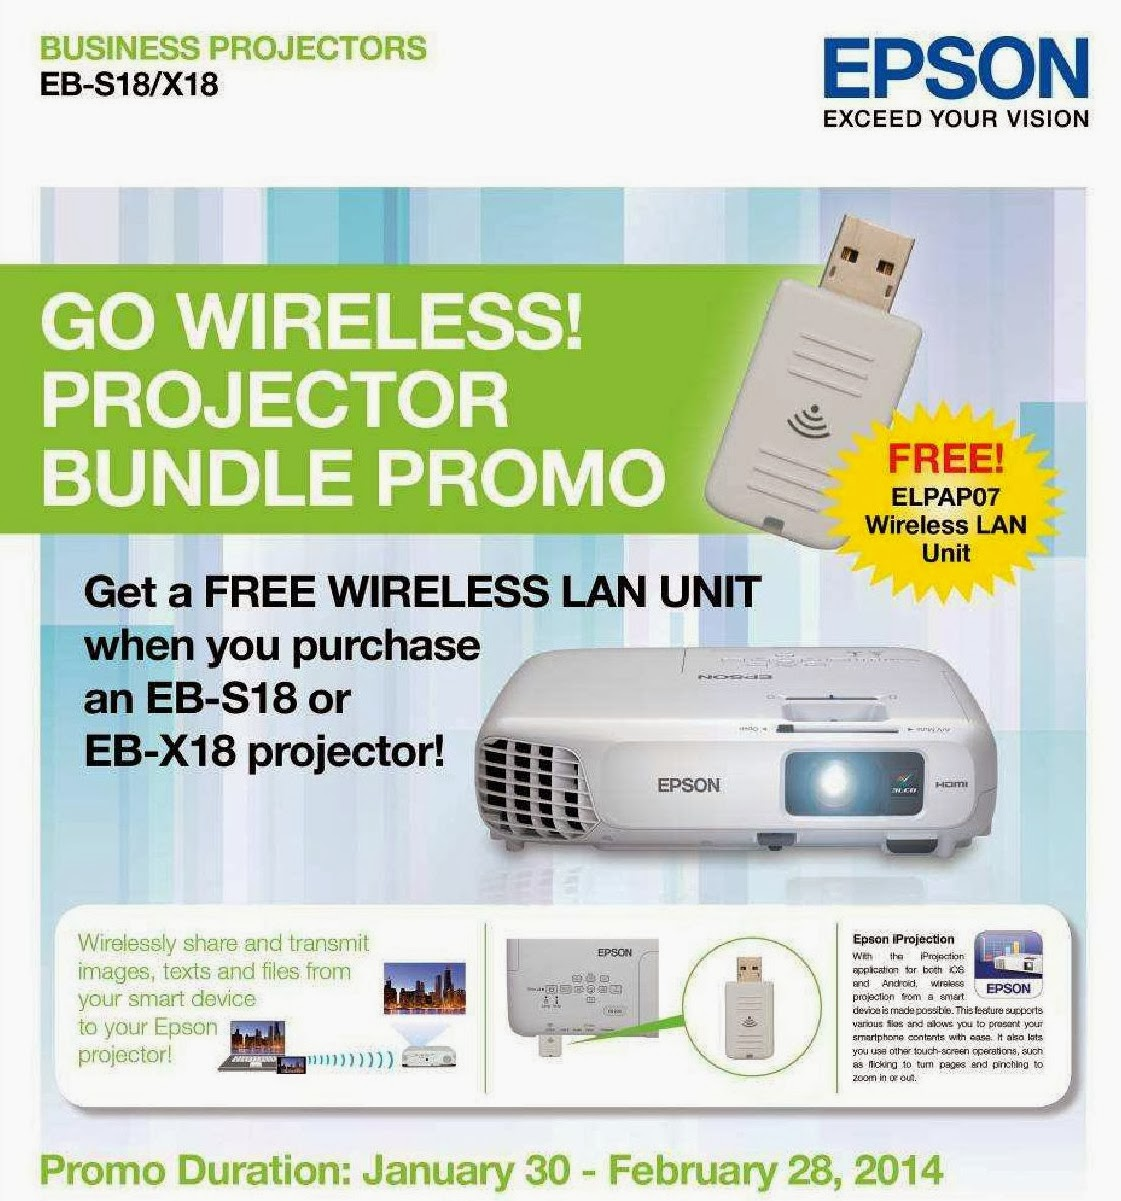 Epson Go Wireless! Projector Bundle Promo